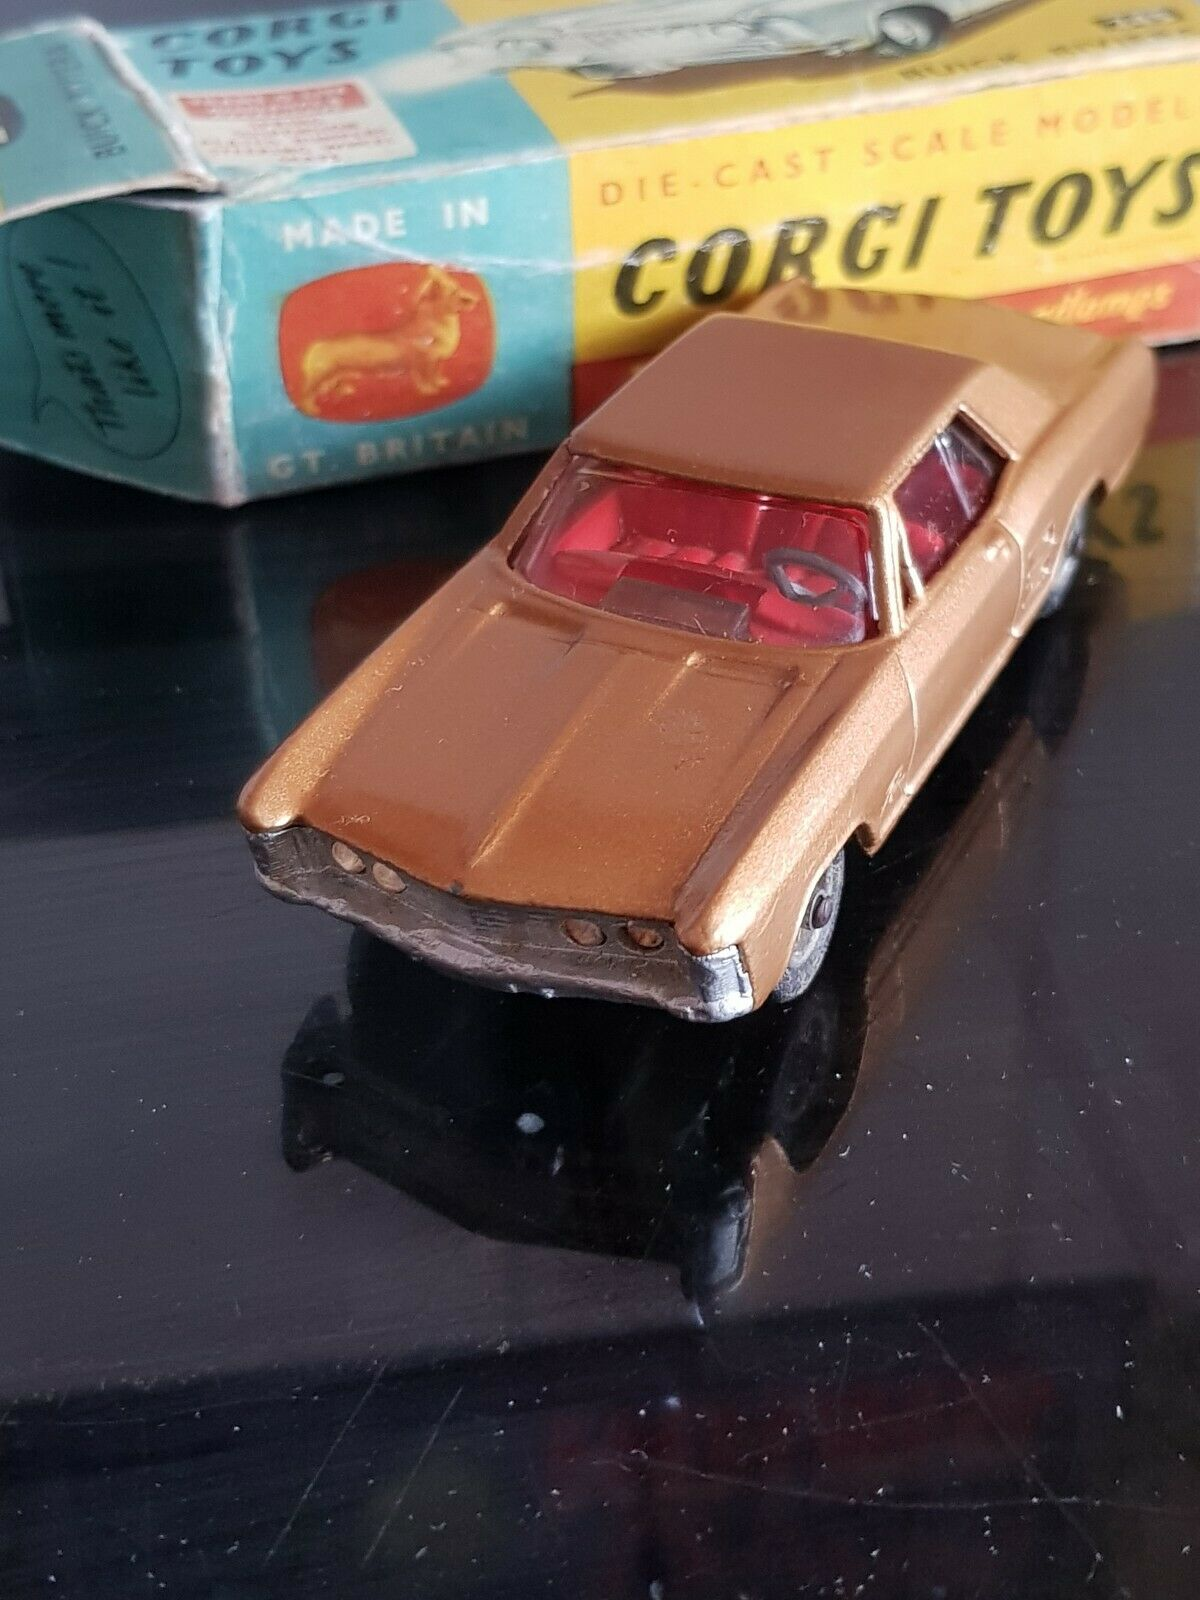 Vintage corgi Toys Buick Buick Buick Riviera Car gold Mint Condition Boxed 245 f7c